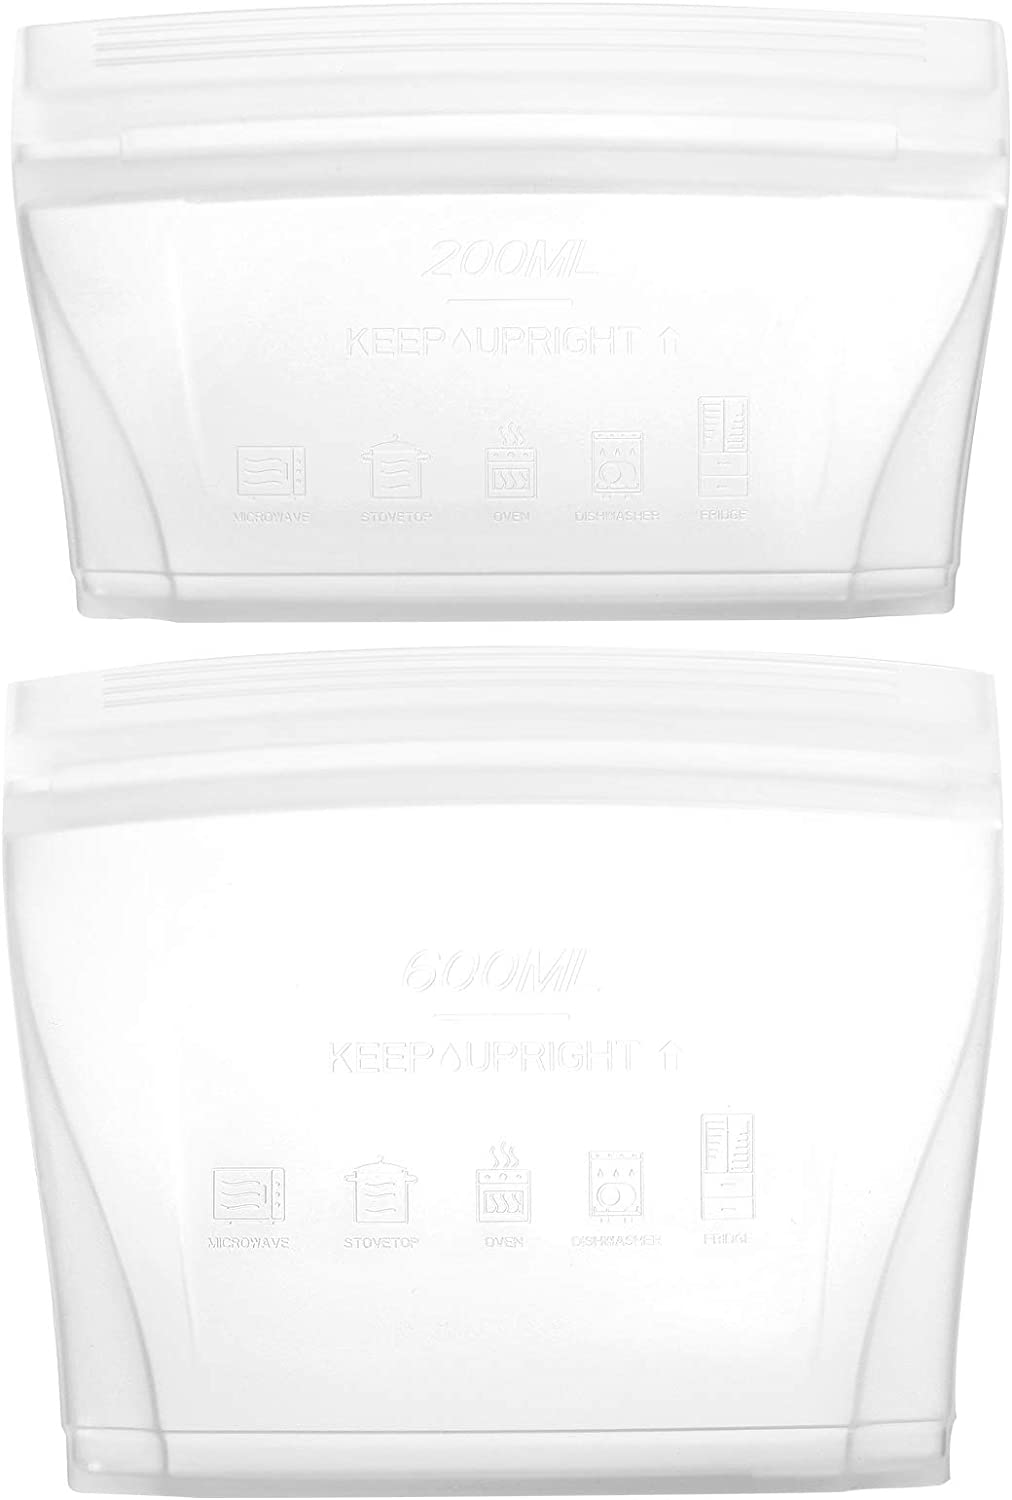 Reusable food container silicone bag, 2 Pcs Zip Sandwich Bags, 100% Platinum Silicone Reusable Snack bag, Stand Up Preservation Bag, Convenient to carry and easy to clean. (2 Bag Set white)…